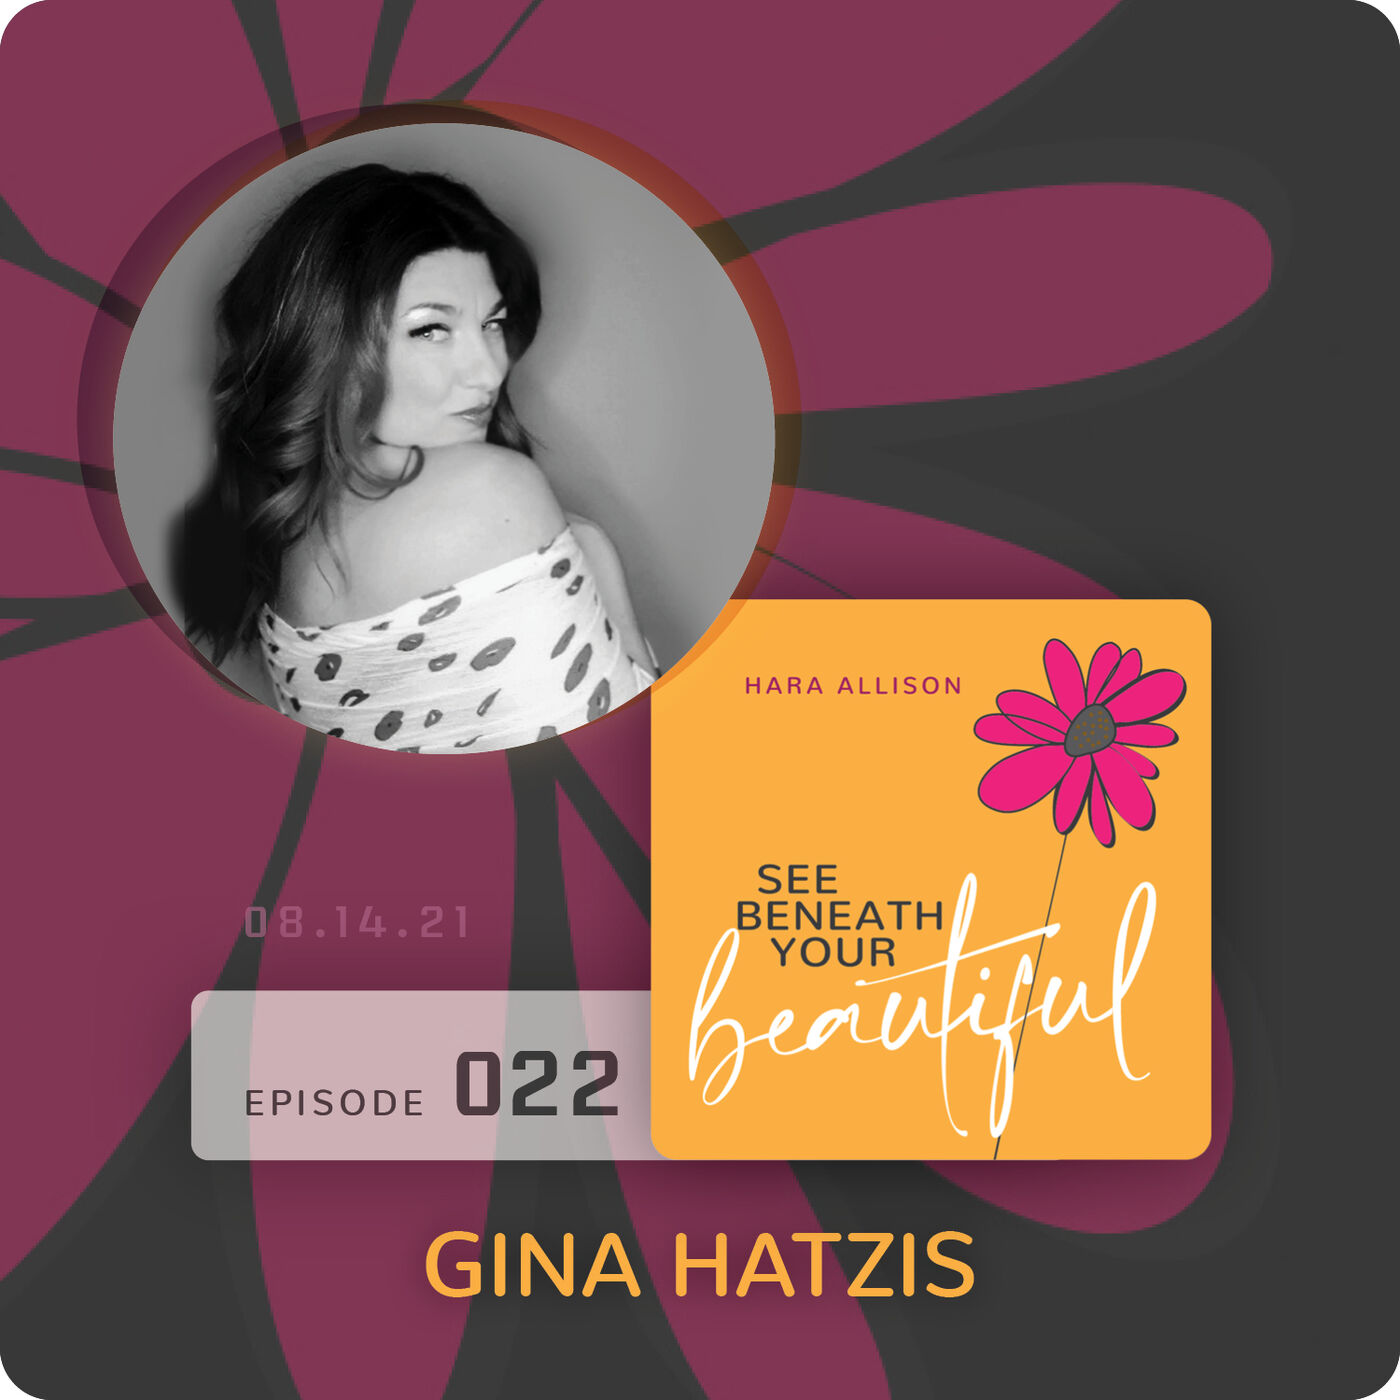 022. Gina Hatzis discusses being a visionary of the Too Much Woman movement, a confidence crusader, a model of possibility for others while hitting refresh daily and learning to play in the messy middle